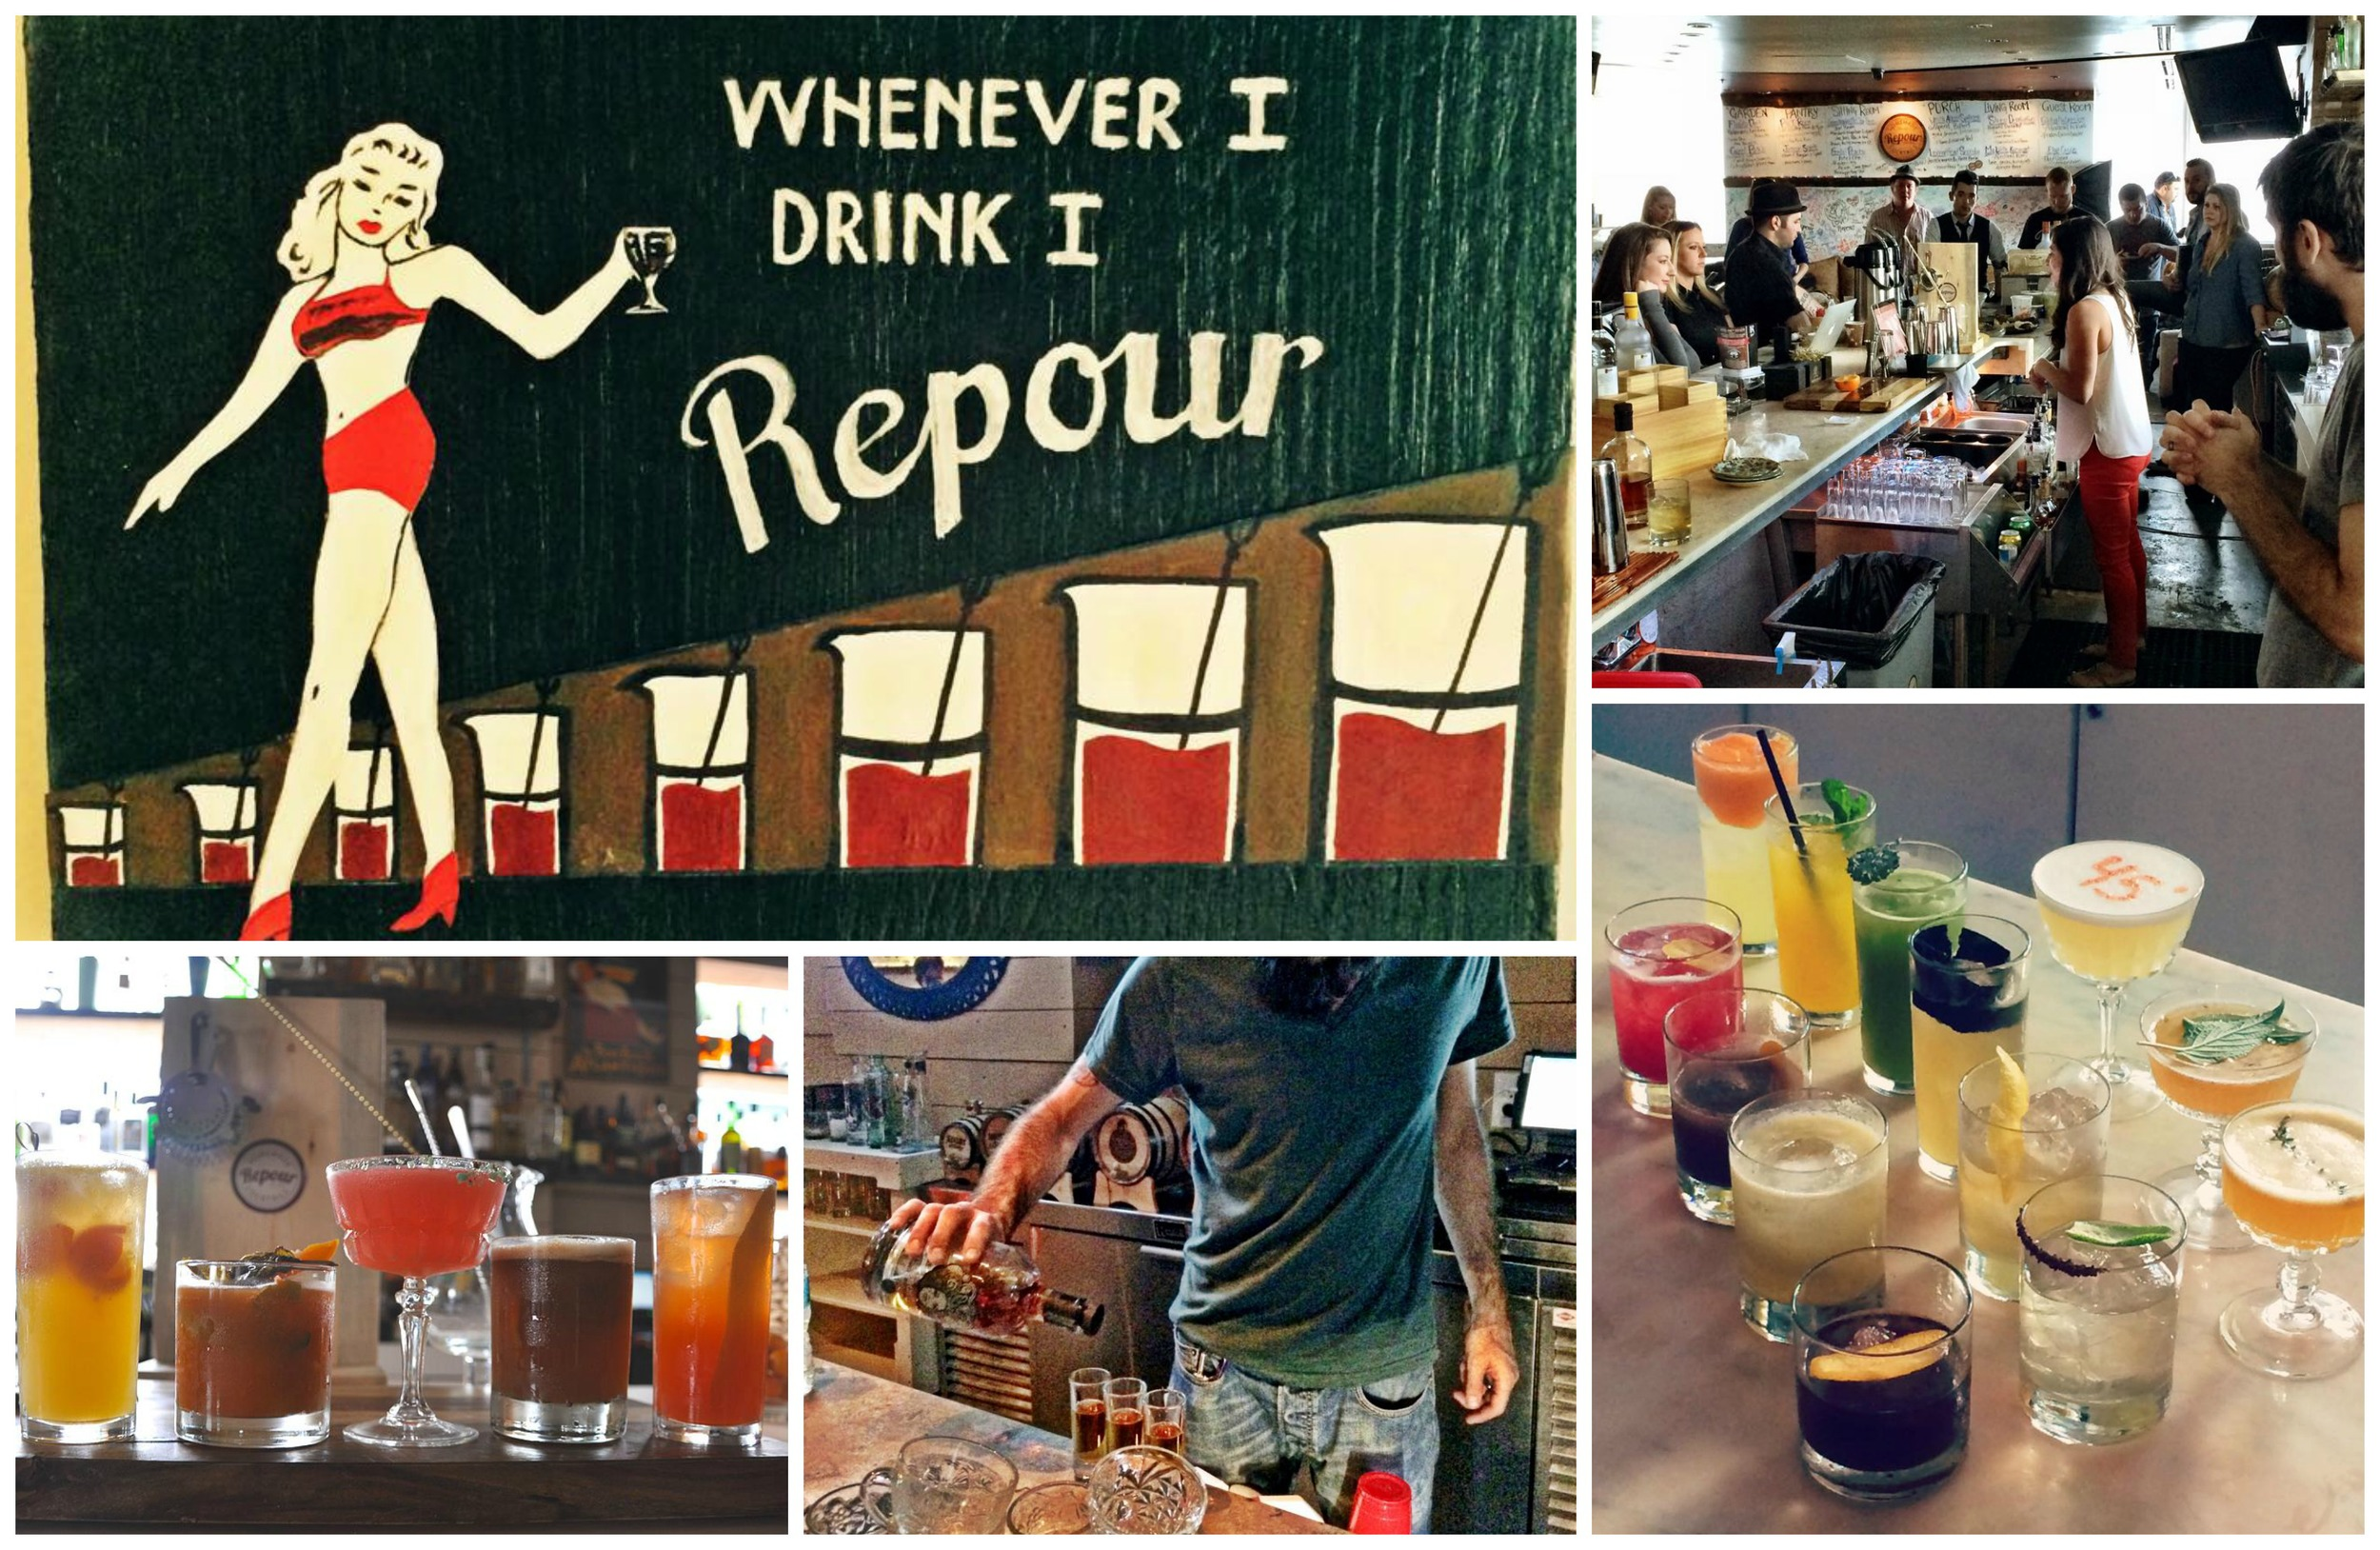 Repour2 Collage.jpg